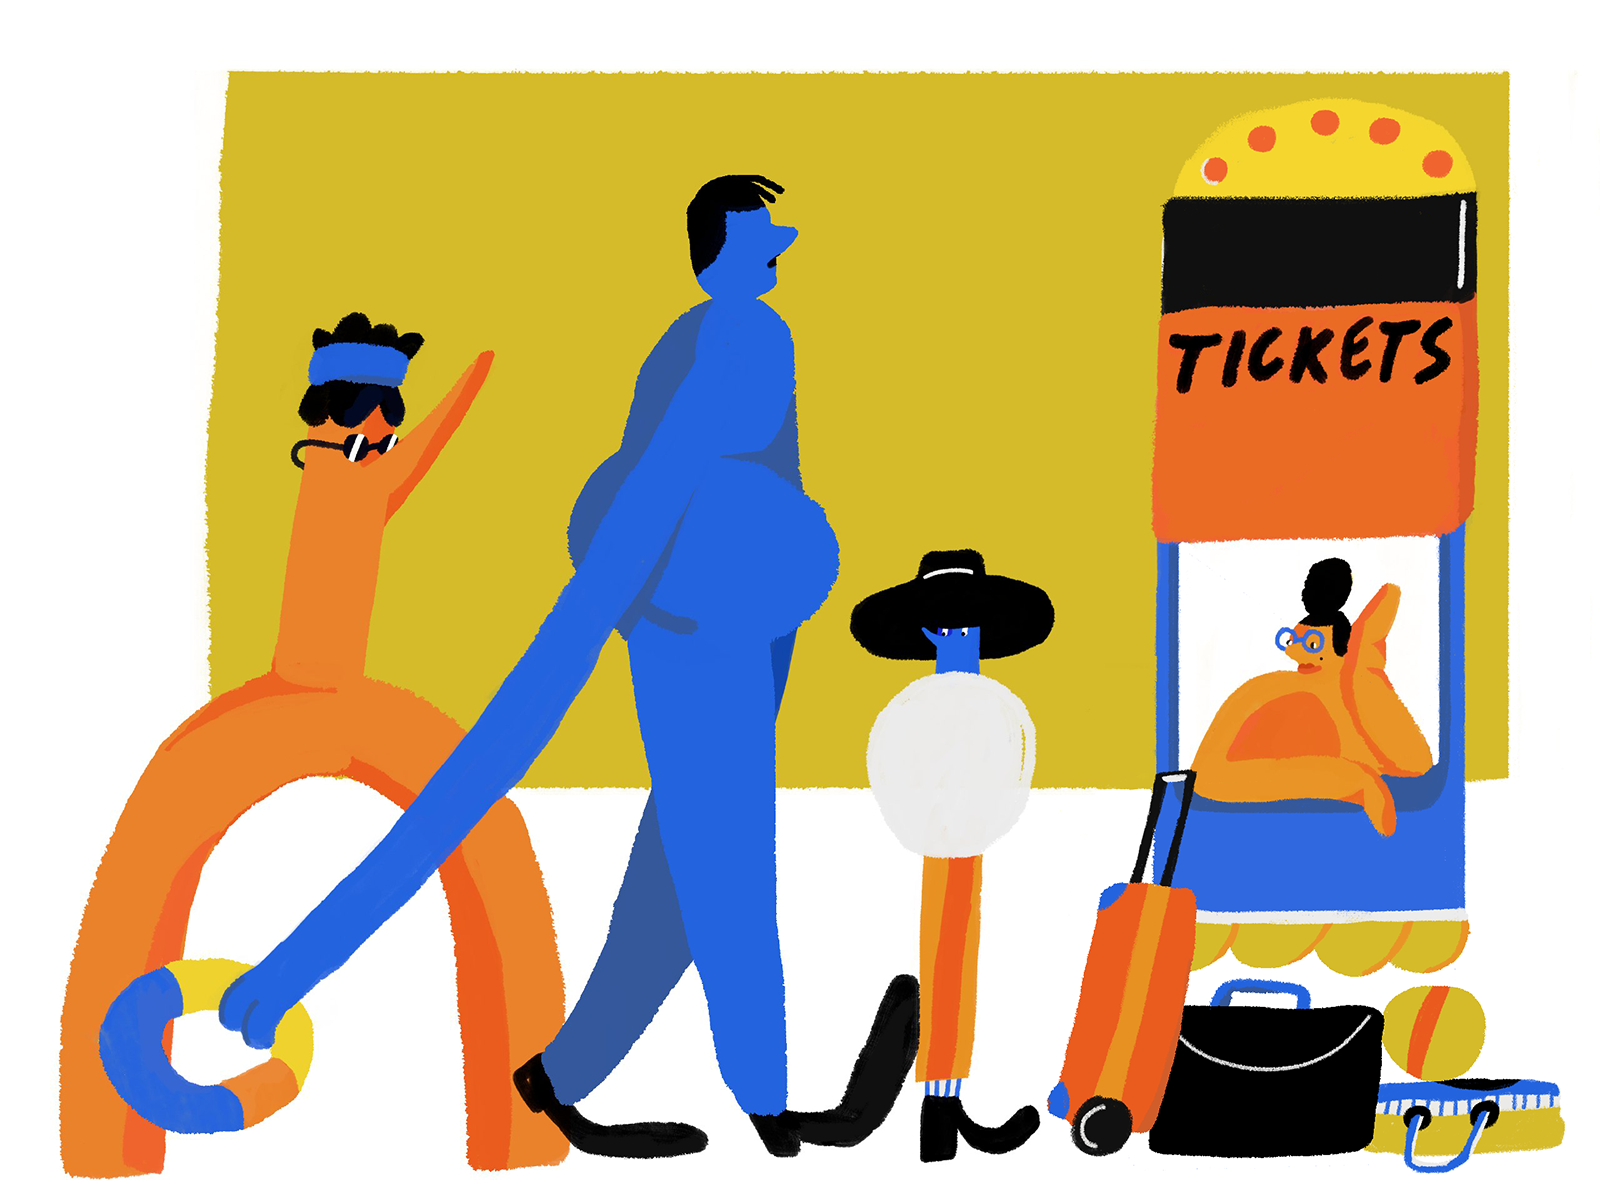 ticket office illustration tubikarts